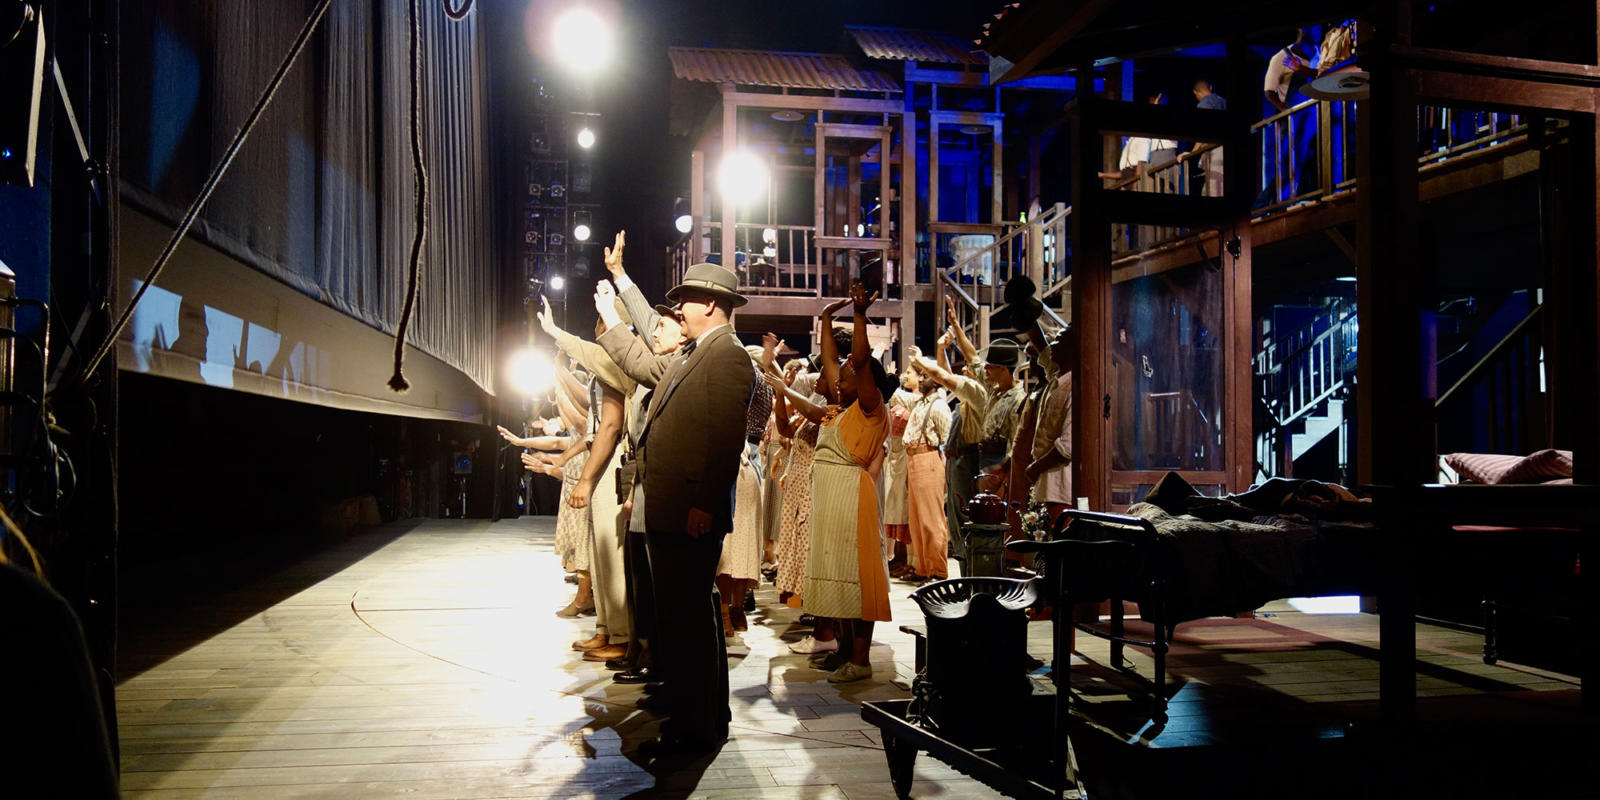 The curtain comes down on Porgy and Bess ensemble during their curtain call